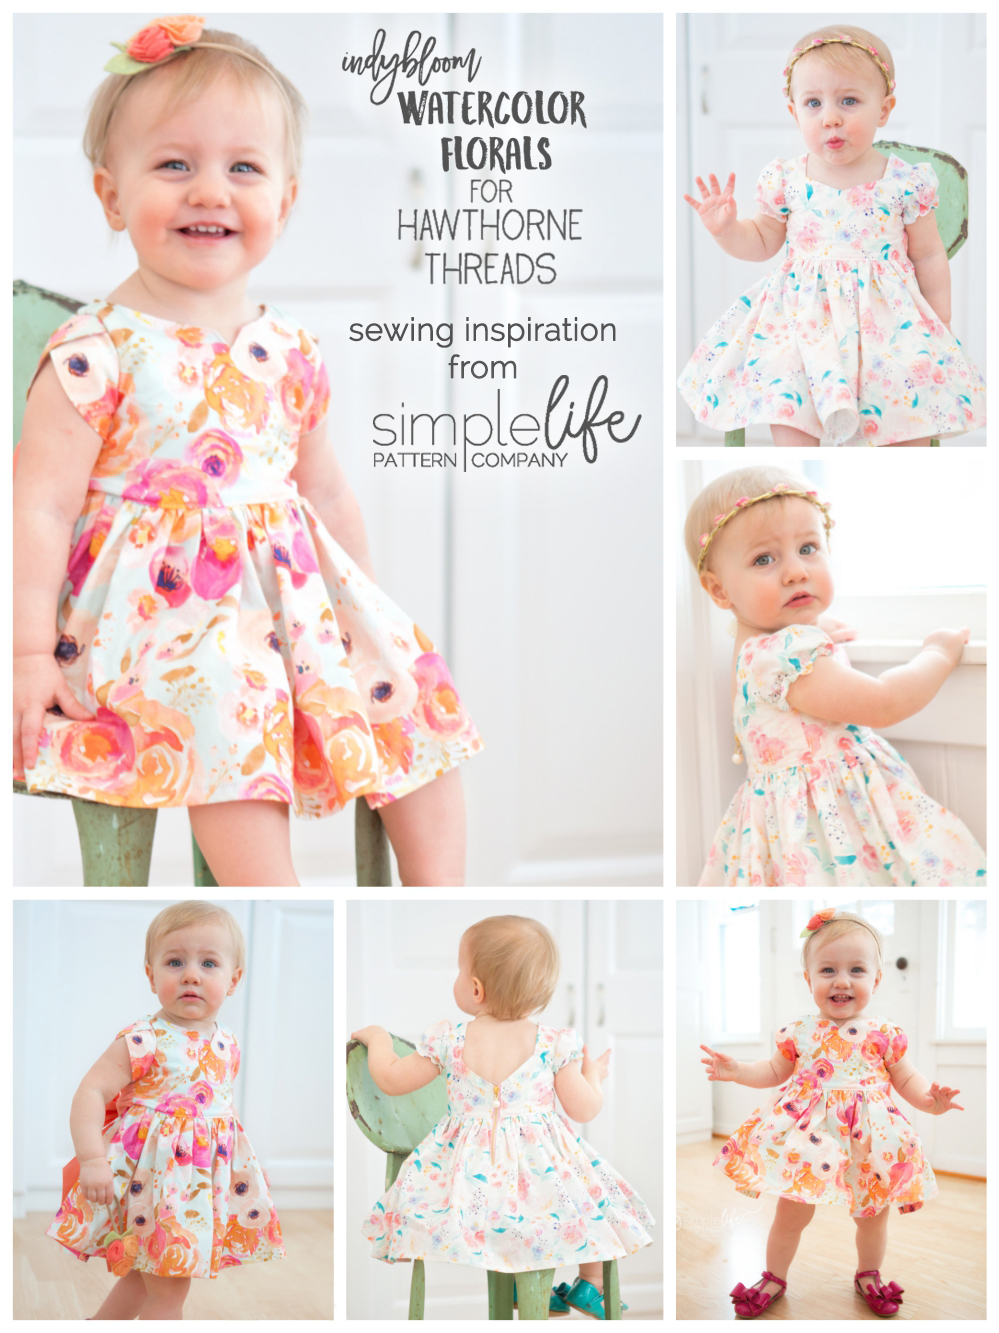 Simple Life Pattern Company Watercolor Floral inspiration